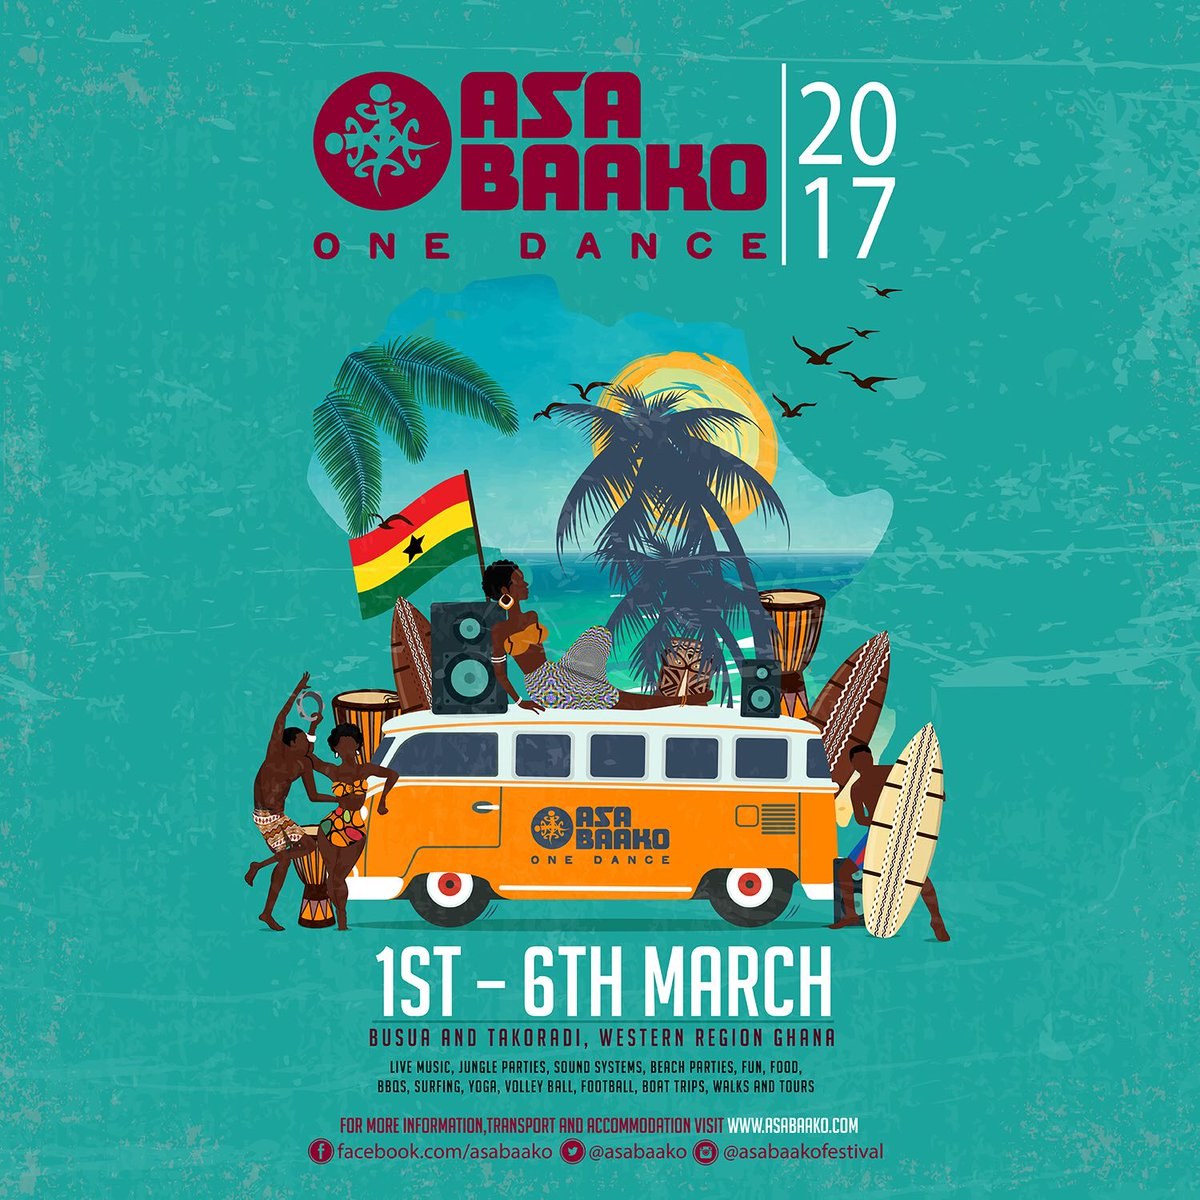 We are steadily getting ready....   #Asabaako2017 https://t.co/FDm14BI0xm